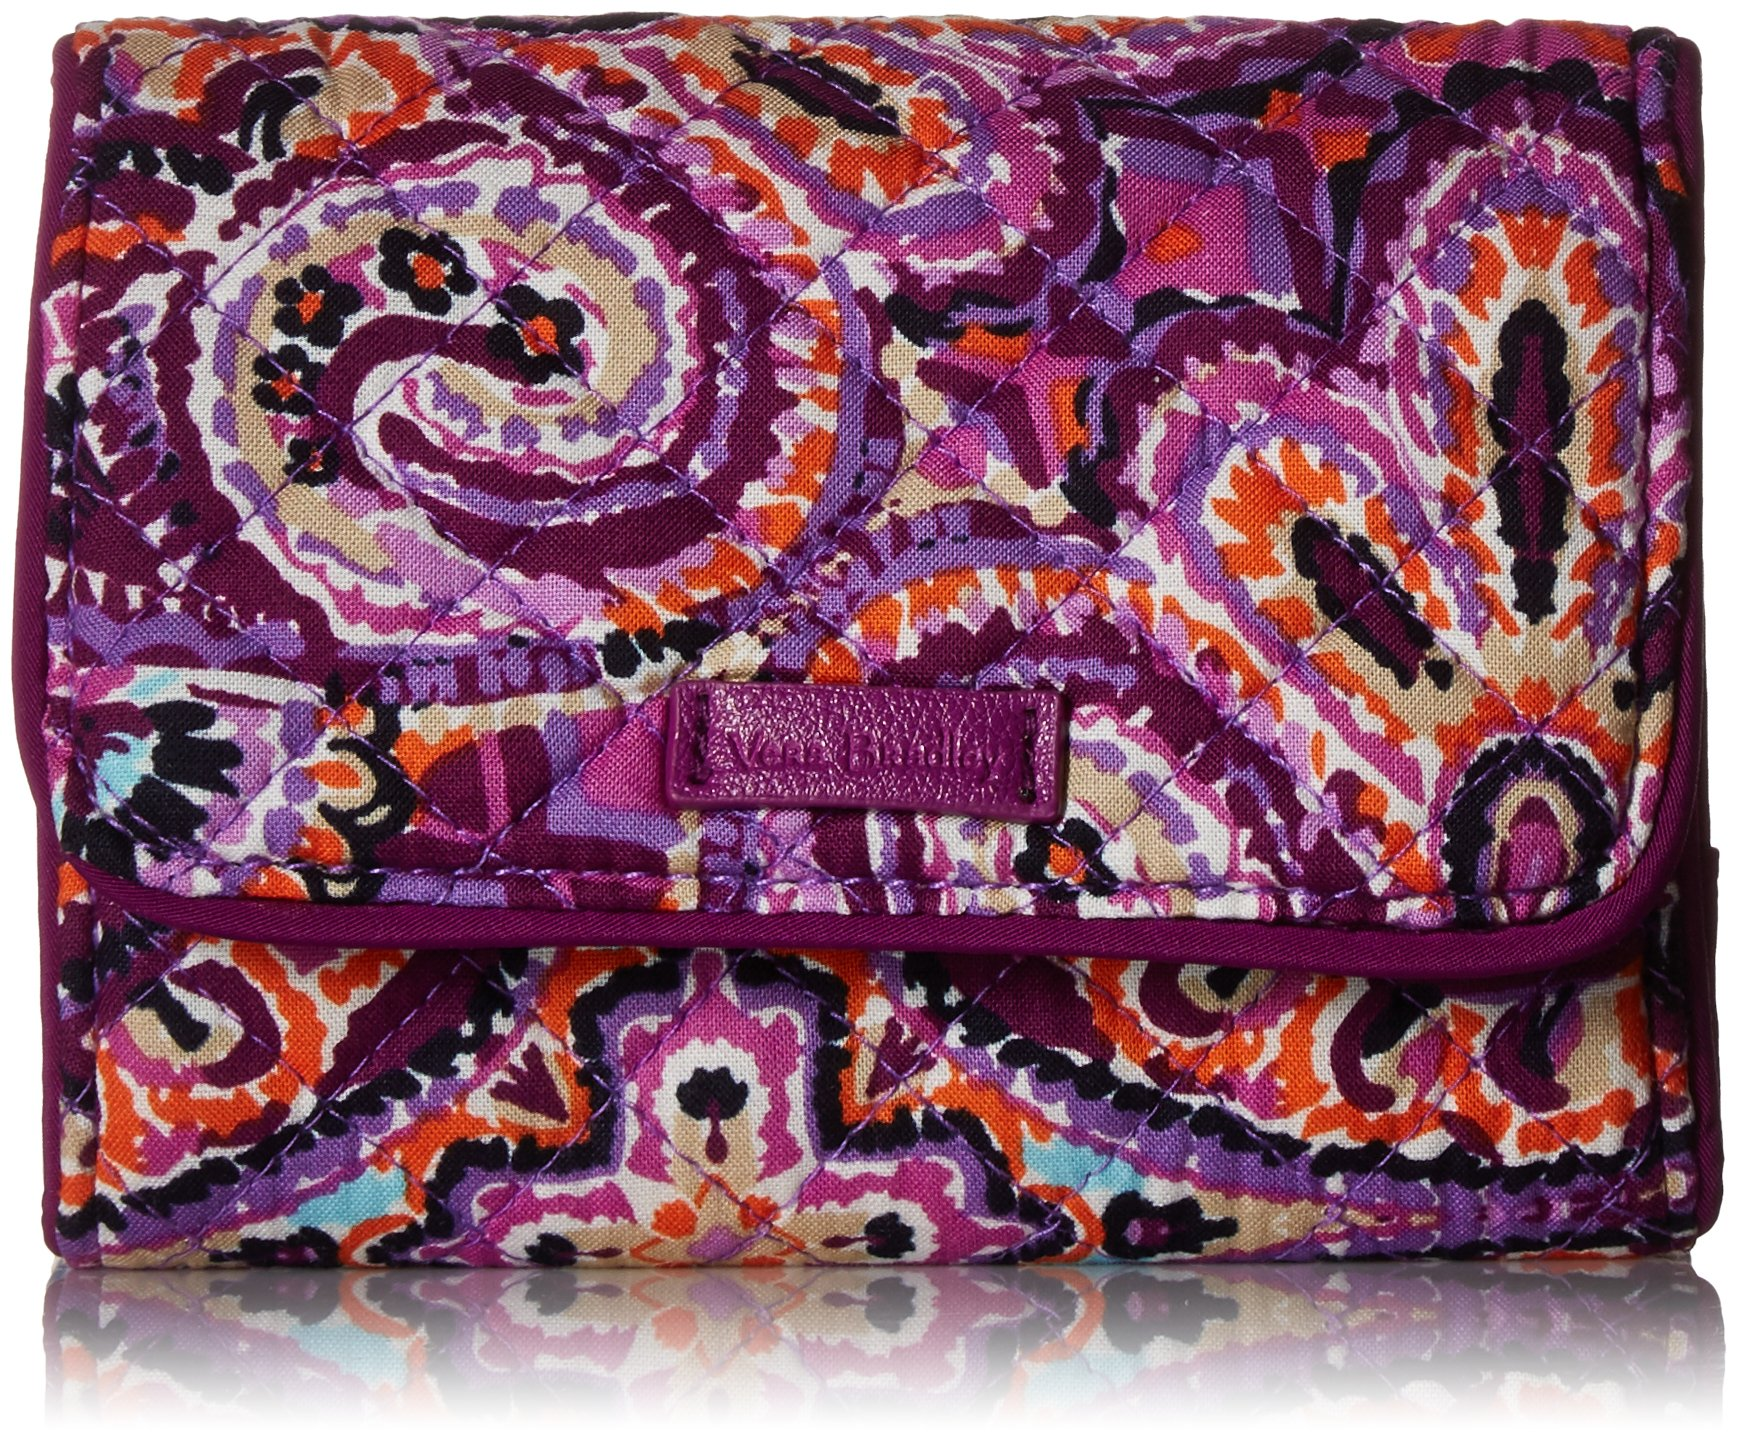 Vera Bradley Iconic Rfid Riley Compact Wallet, Signature Cotton, Dream Tapestry